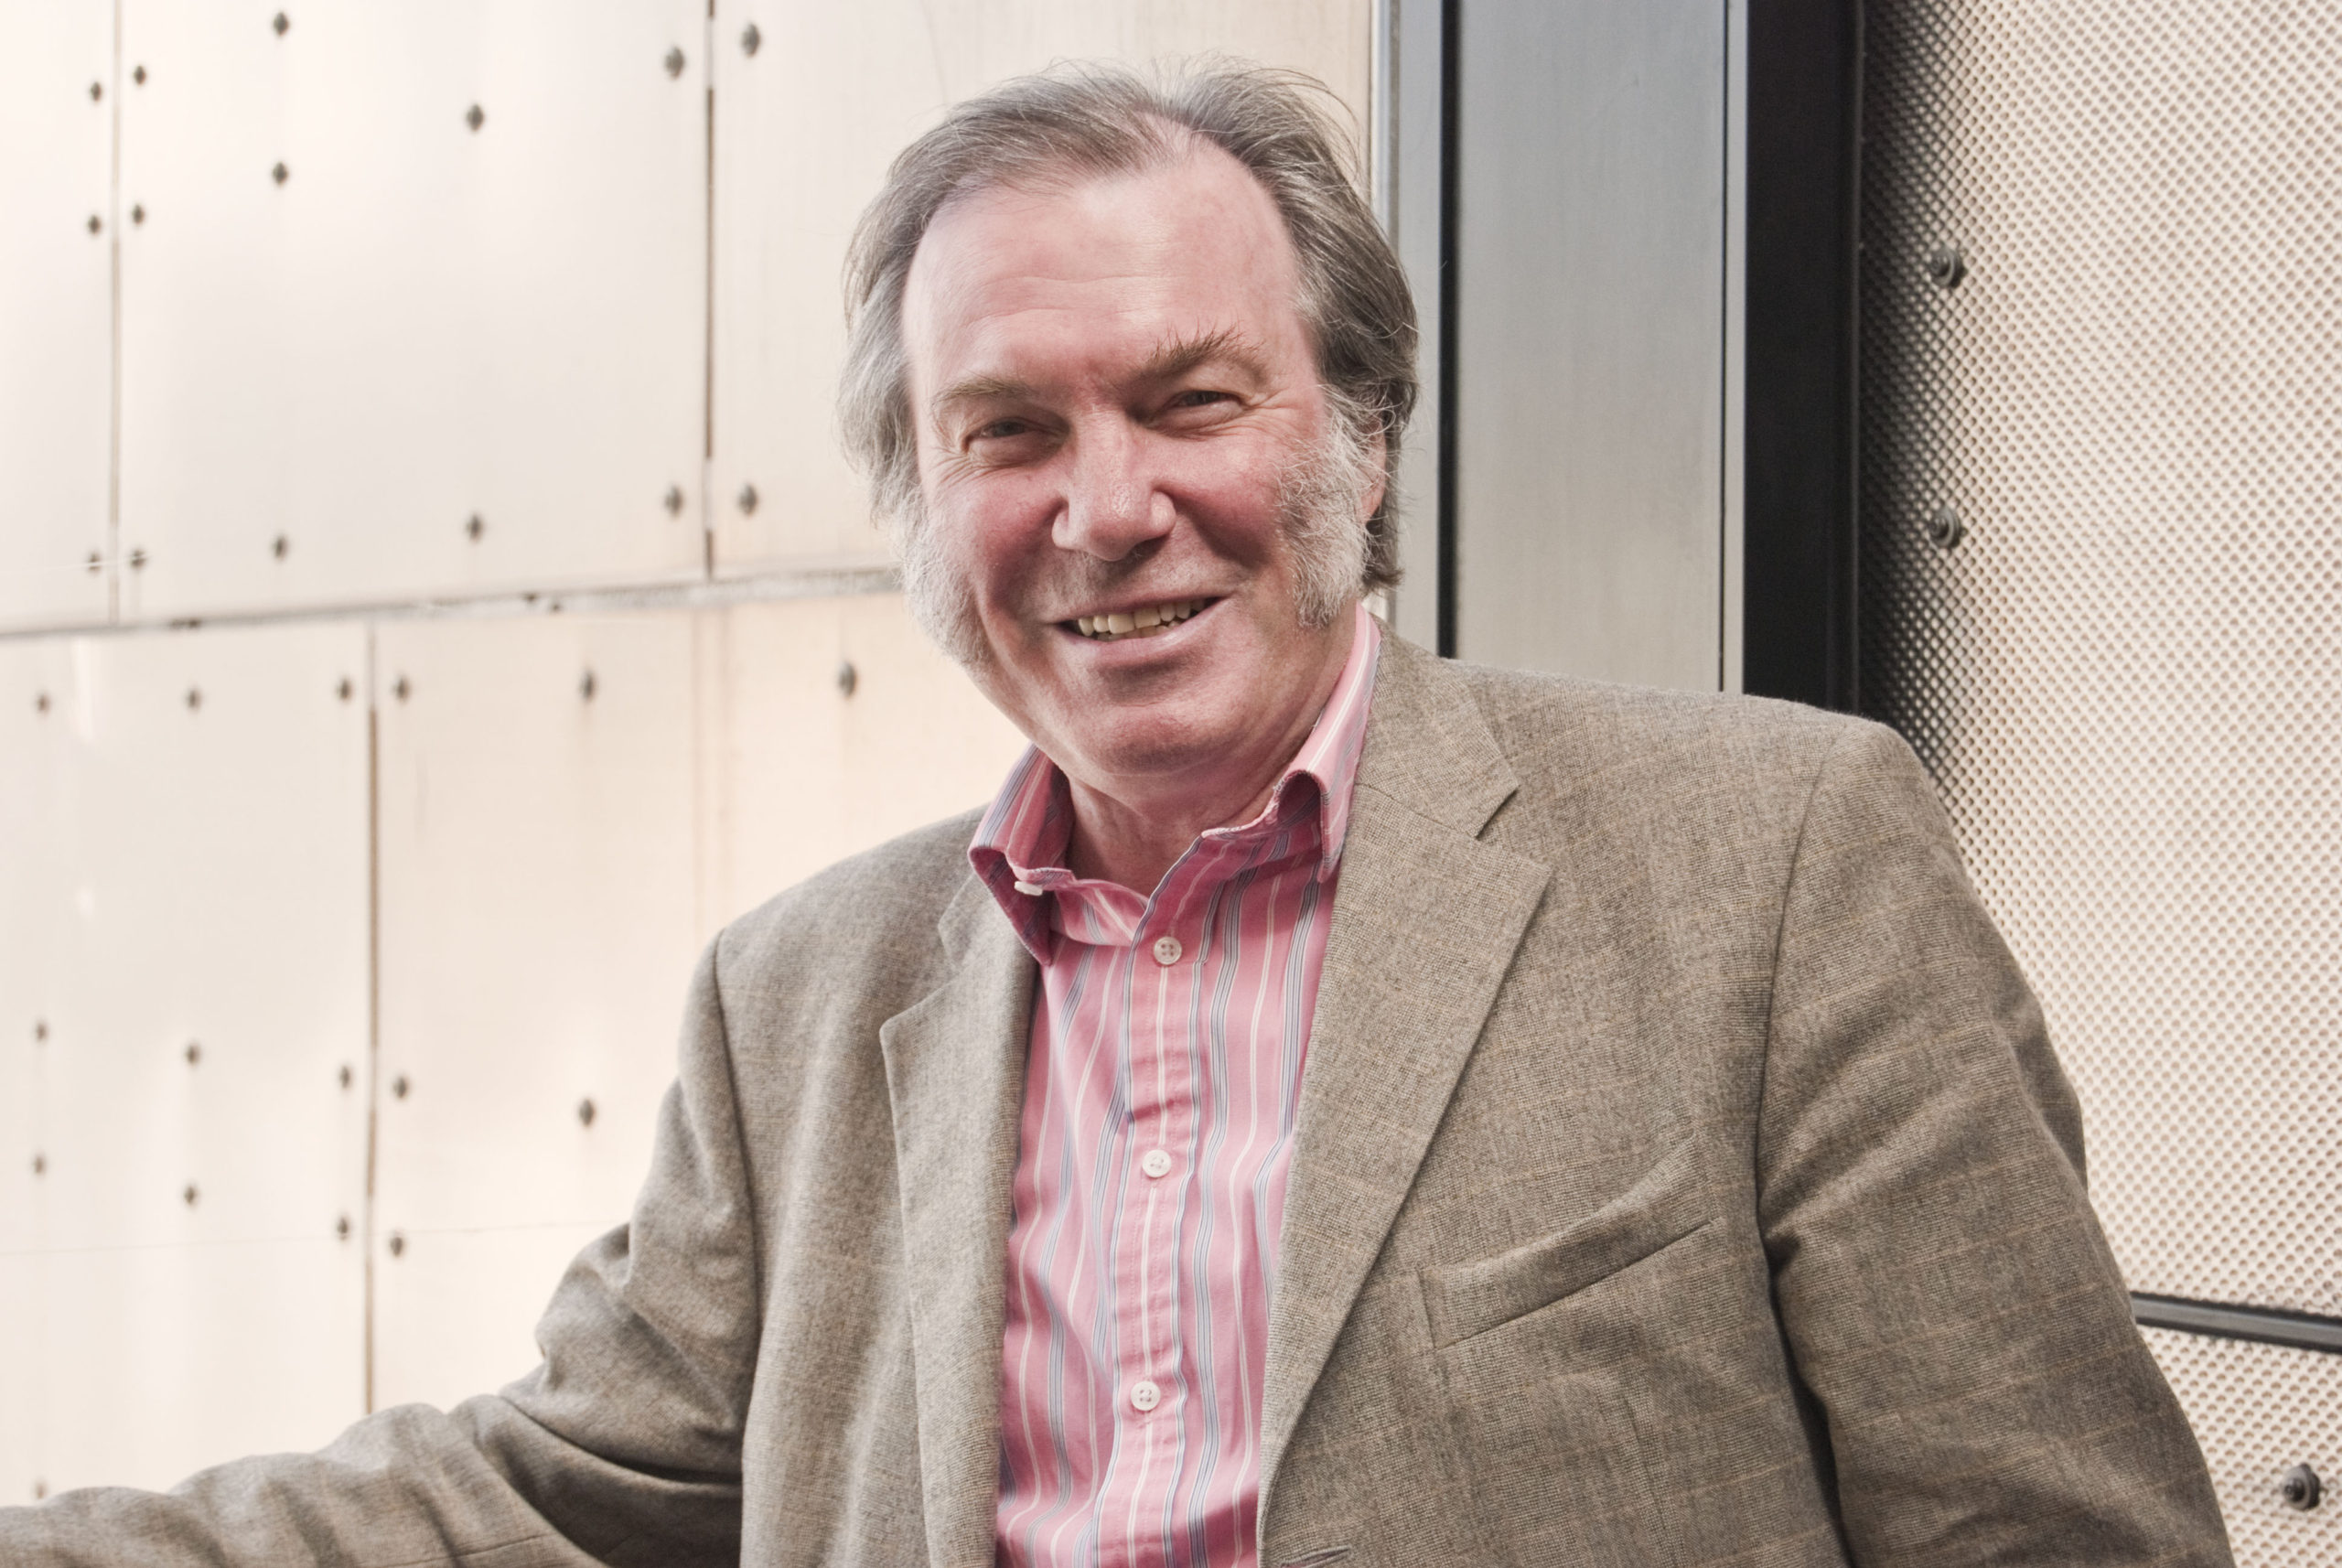 The art of business can boost economy, says opera legend